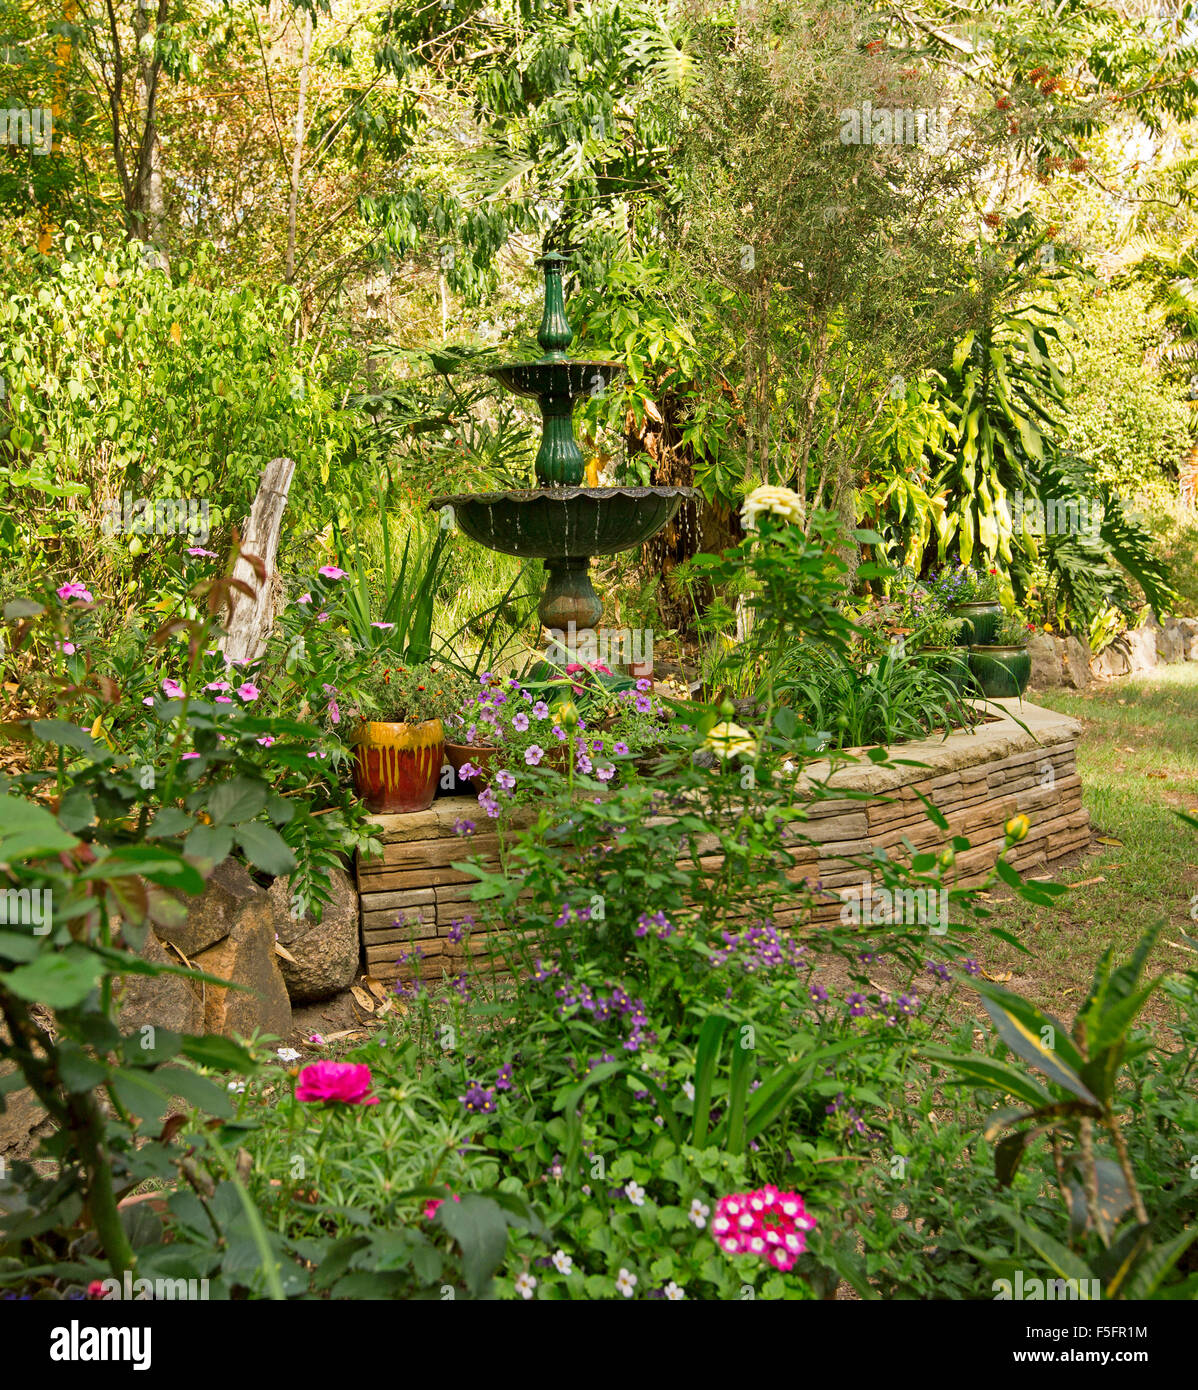 Decorative Garden Feature With Low Stone Wall, Ornate Fountain, Plants In  Containers, Hemmed By Lawn, Flowers, Shrubs, Trees